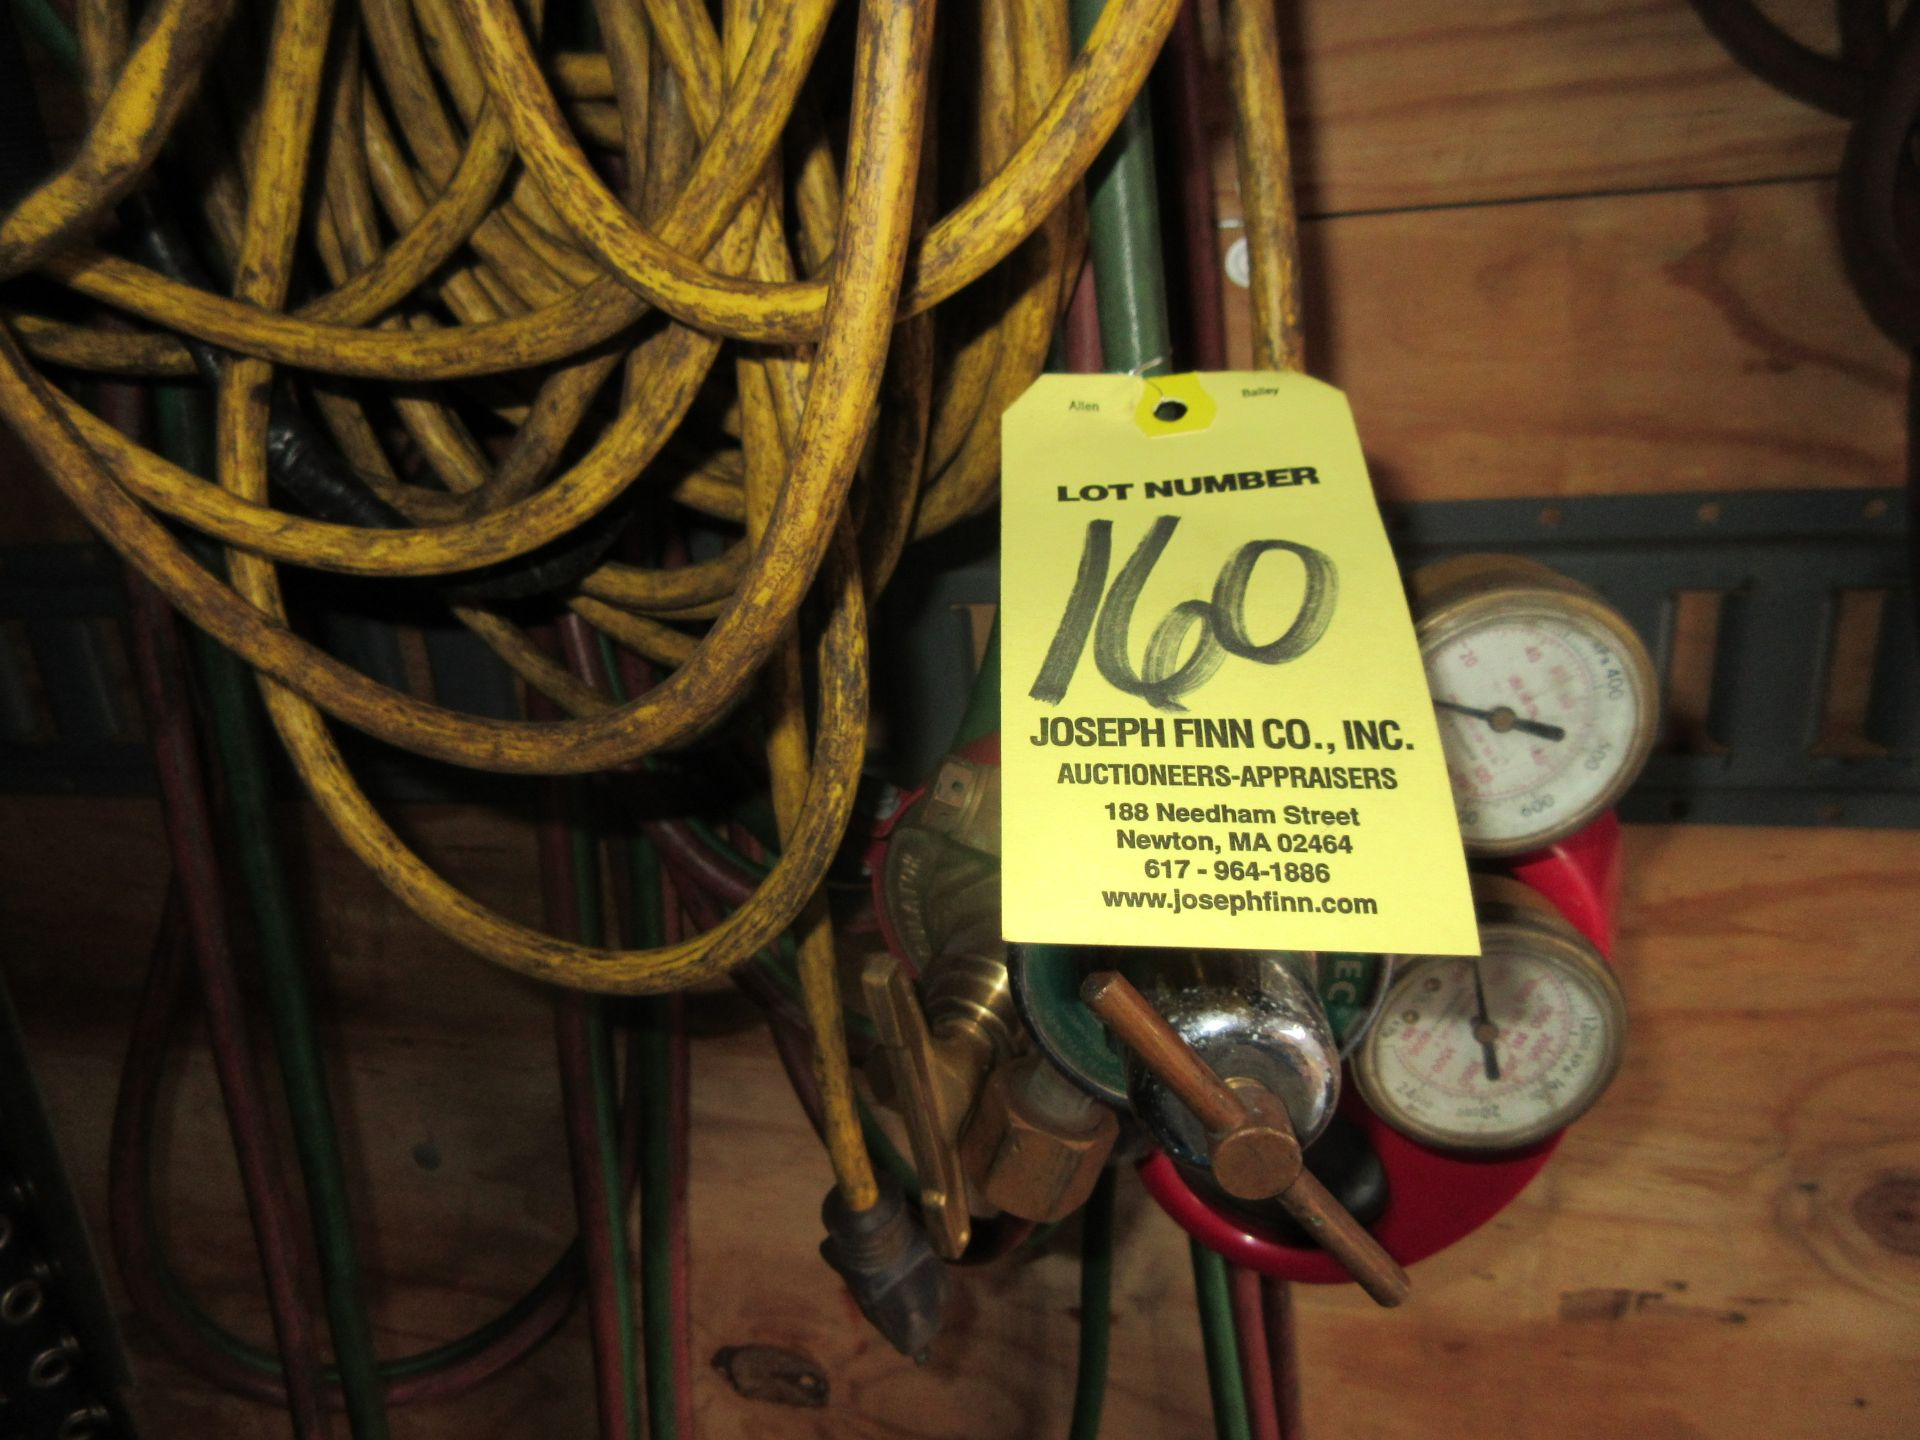 LOT Gas Regulators & Hose This lot is being sold subject to the bulk bid lot number 131.